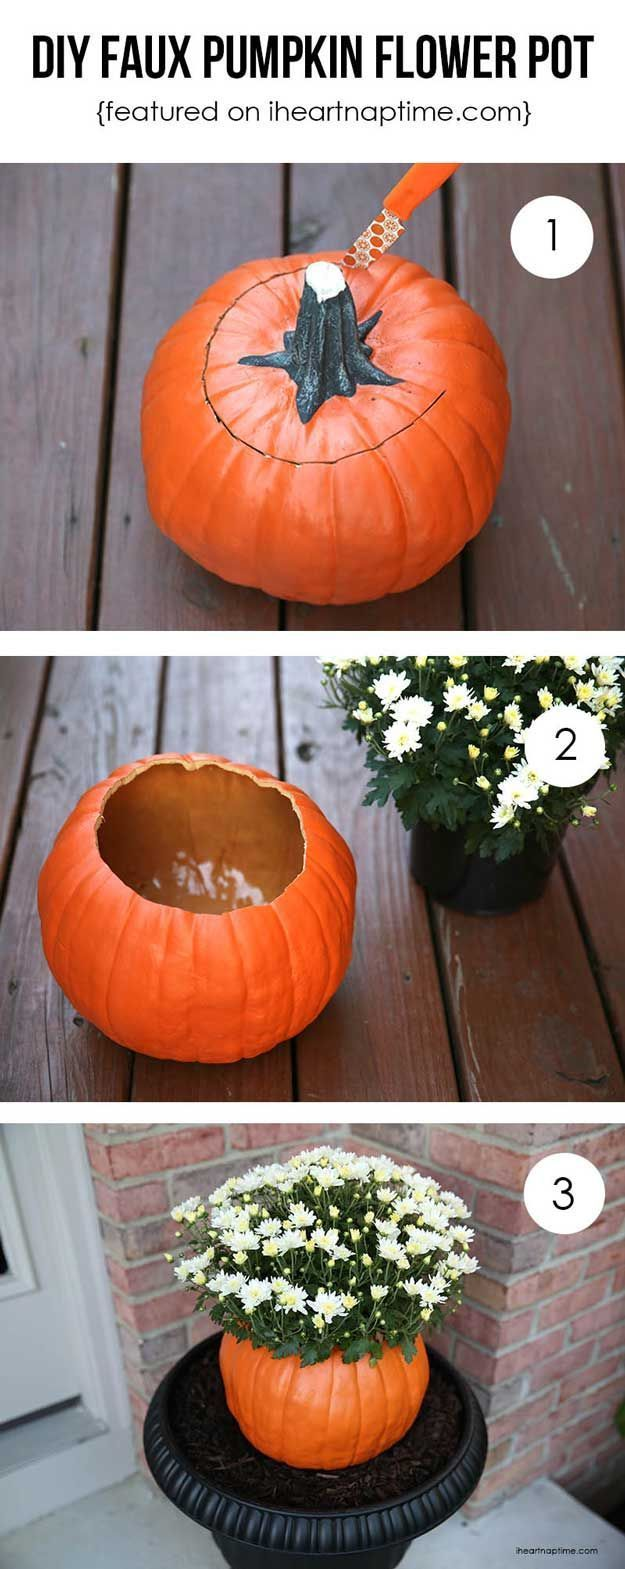 288 best diy fall halloween and thanksgiving images on pinterest check out 15 fall decor diy projects diy pumpkin flower pot by diy ready at solutioingenieria Choice Image